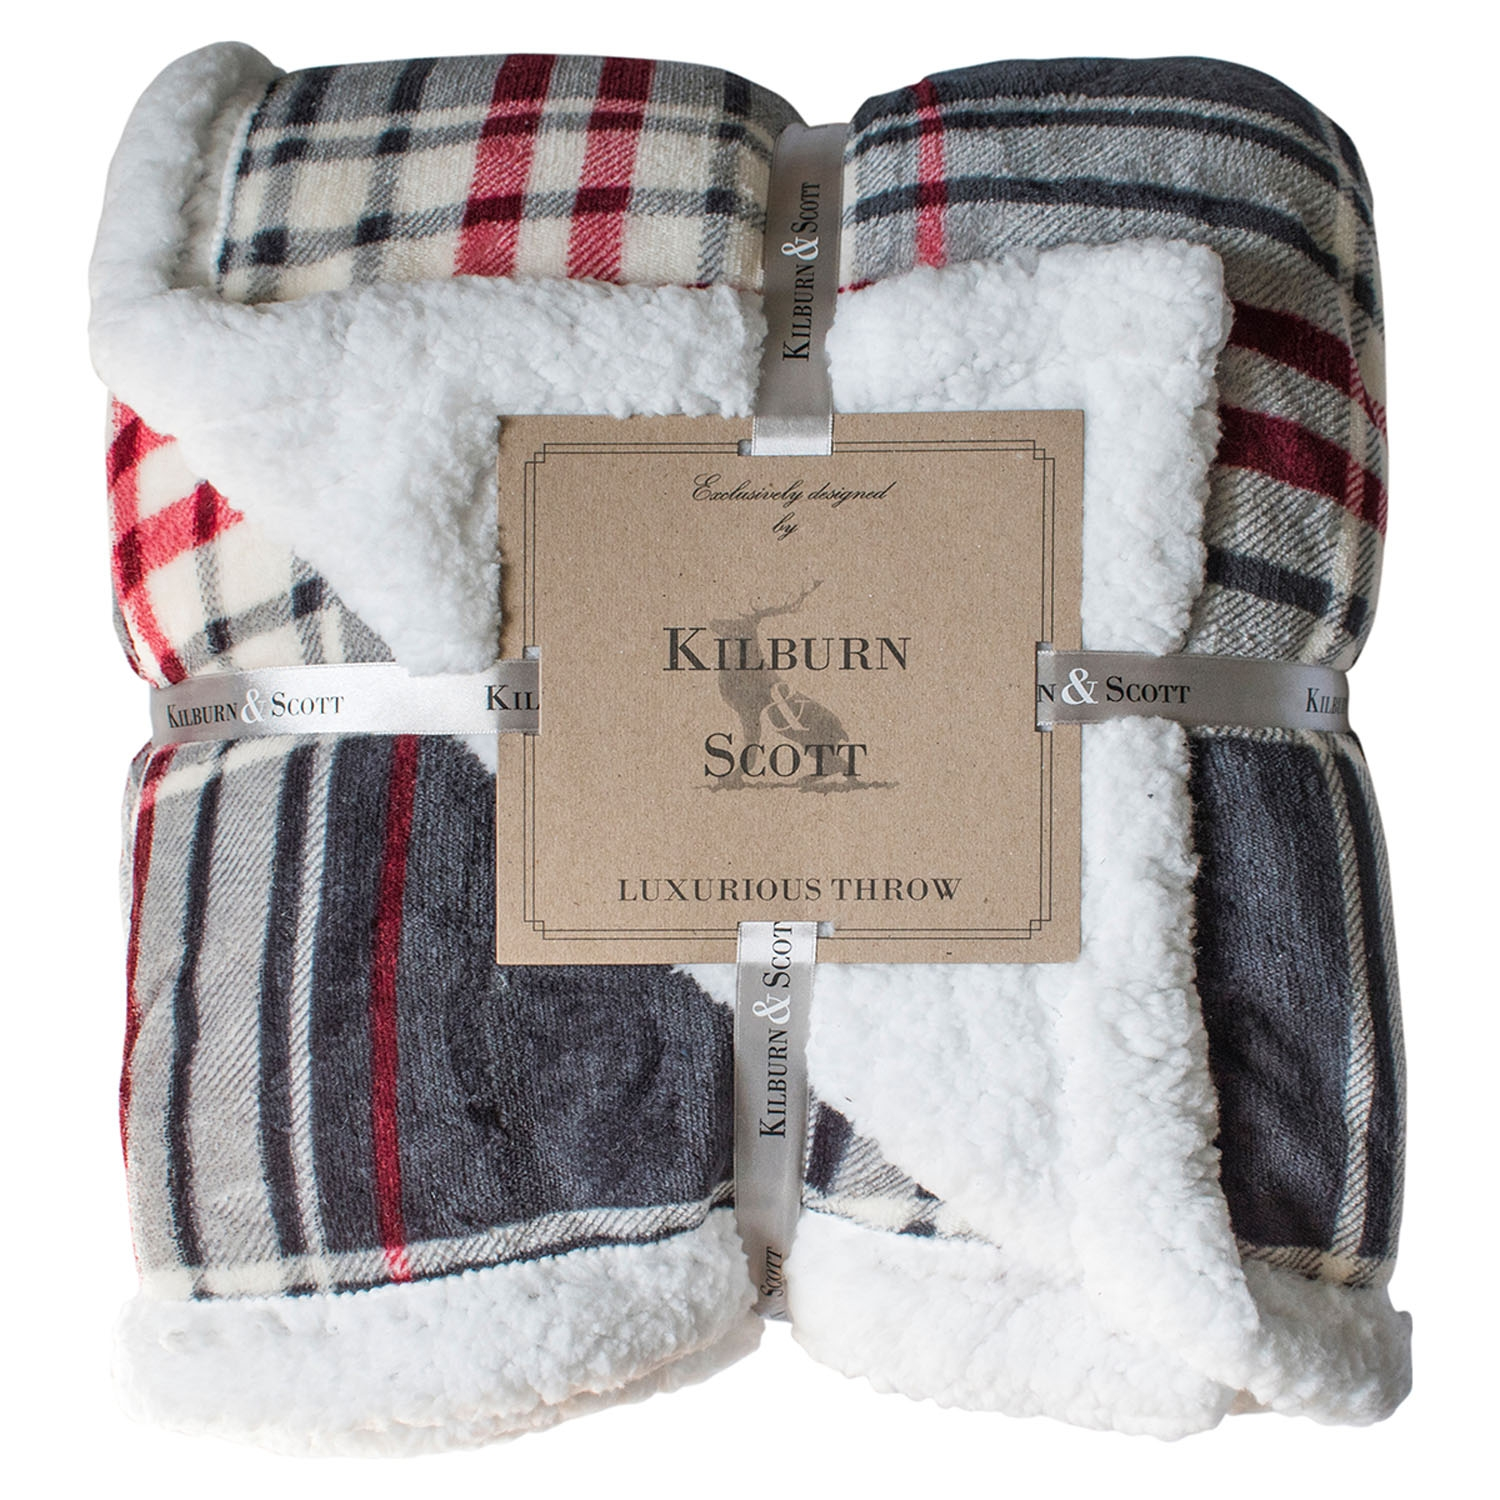 Image of Gallery Check Sherpa Throw, 152 x 177cm, Grey & Red